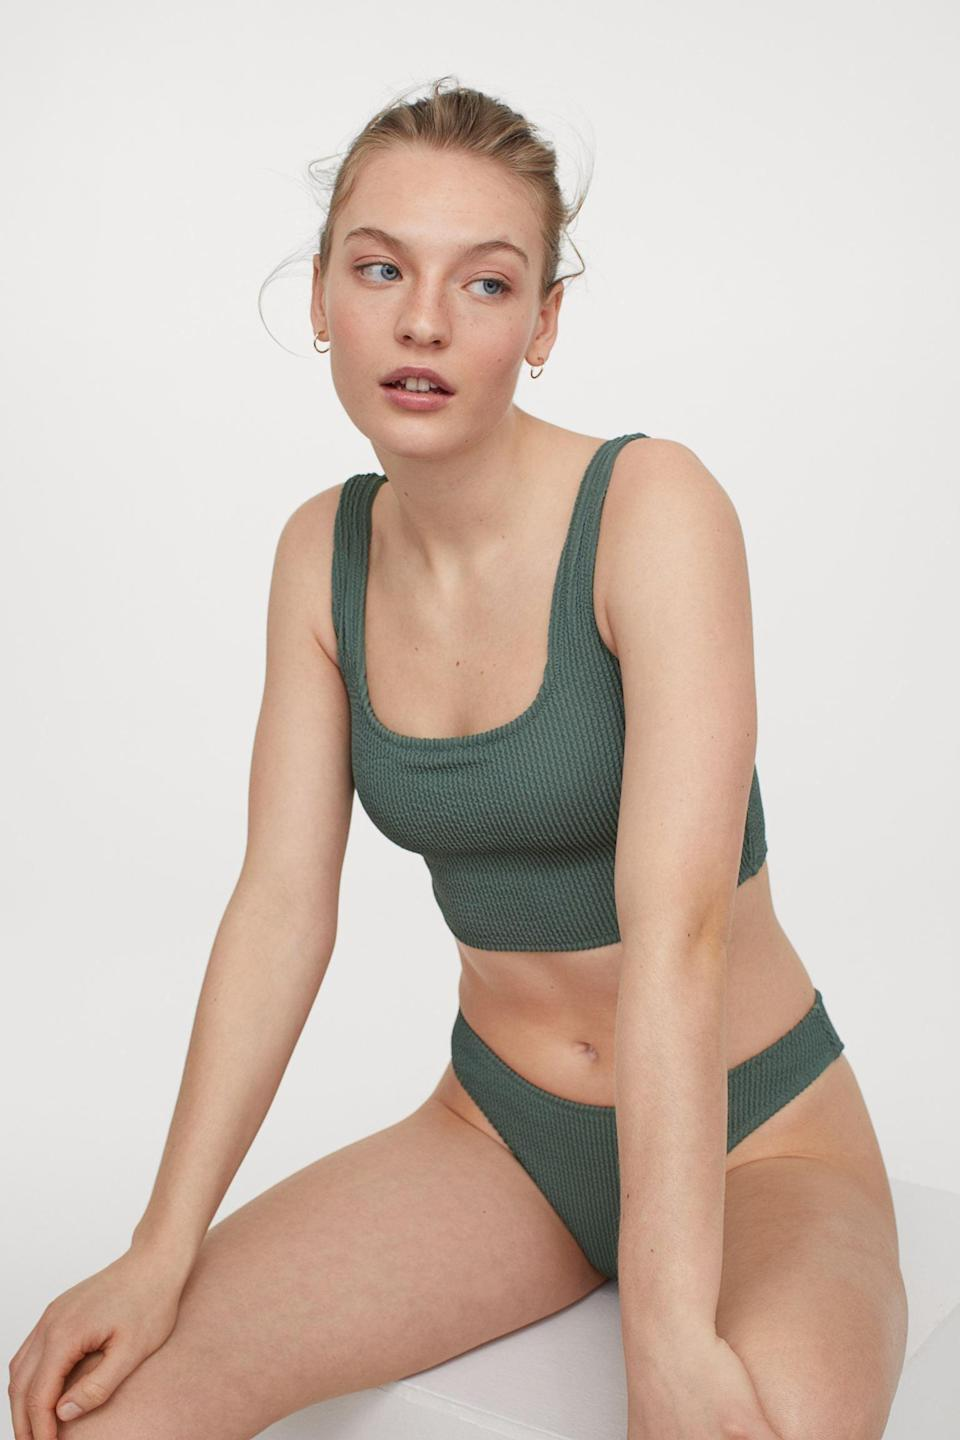 <p>This <span>Bikini Top</span> ($20) can easily be turned into a casual top for everyday occasions. Pair it with these <span>Bikini Bottoms</span> ($13) for a relaxing beach day.</p>